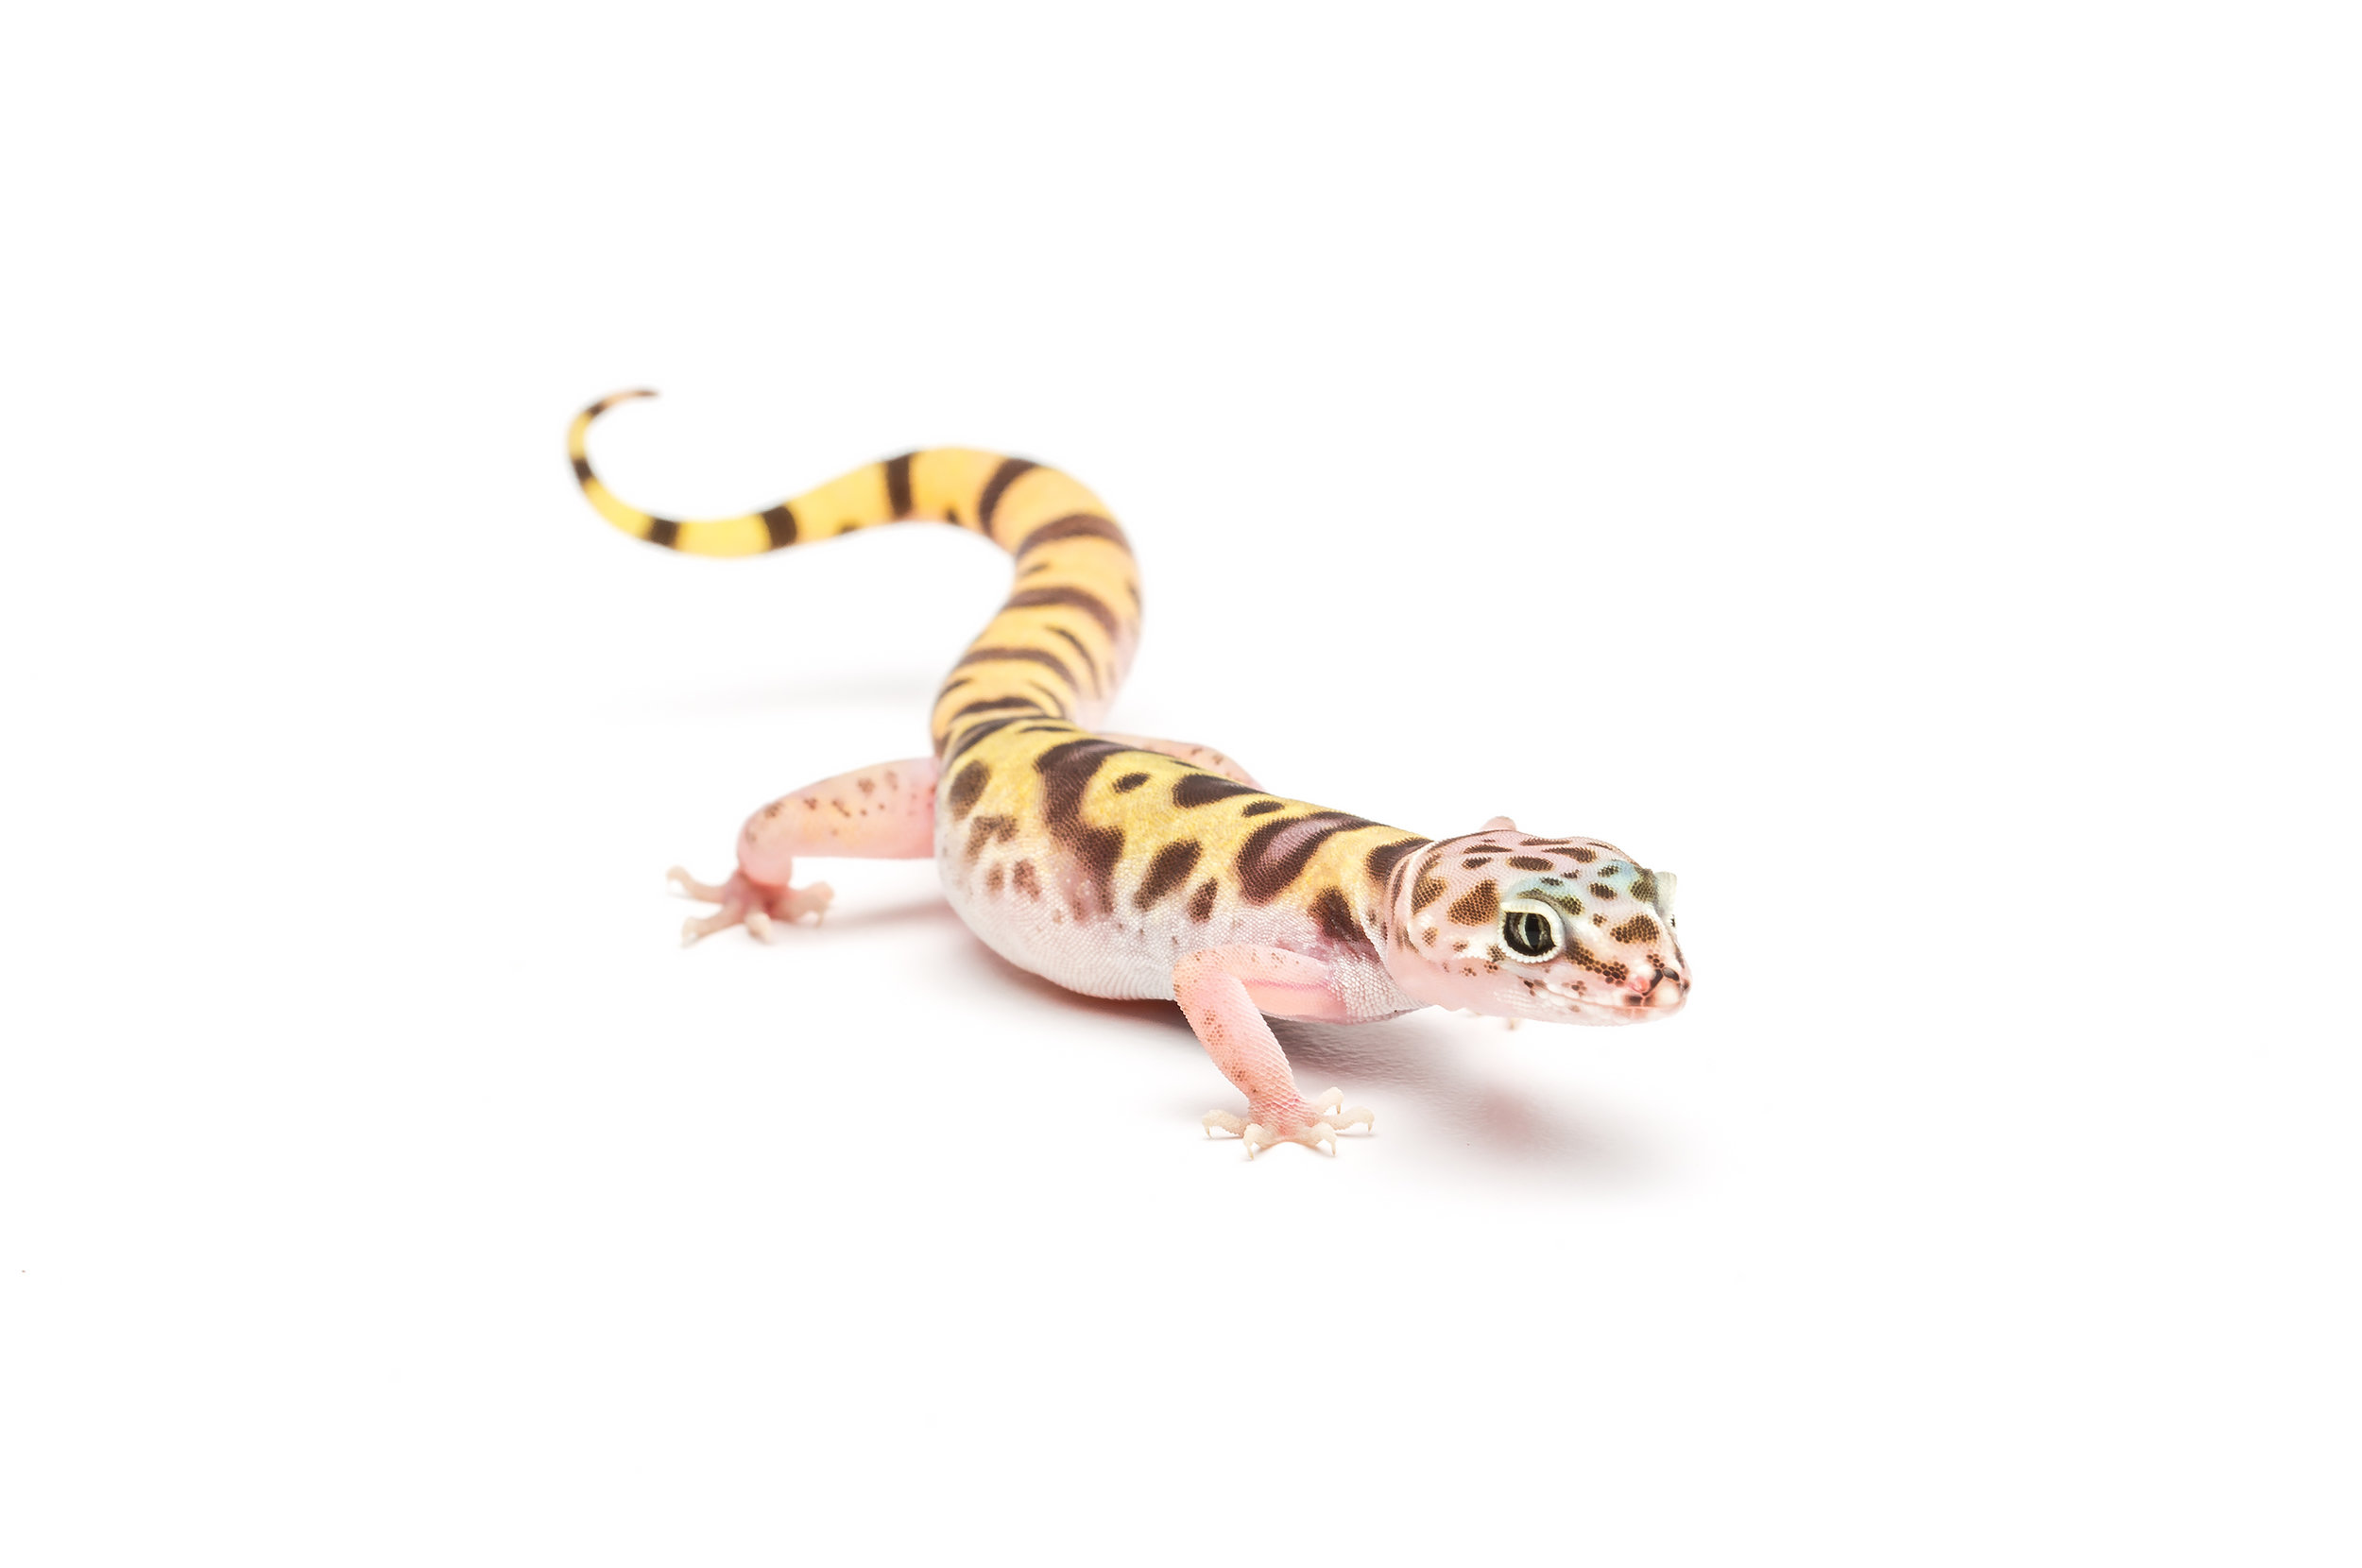 Adult female Tucson banded gecko